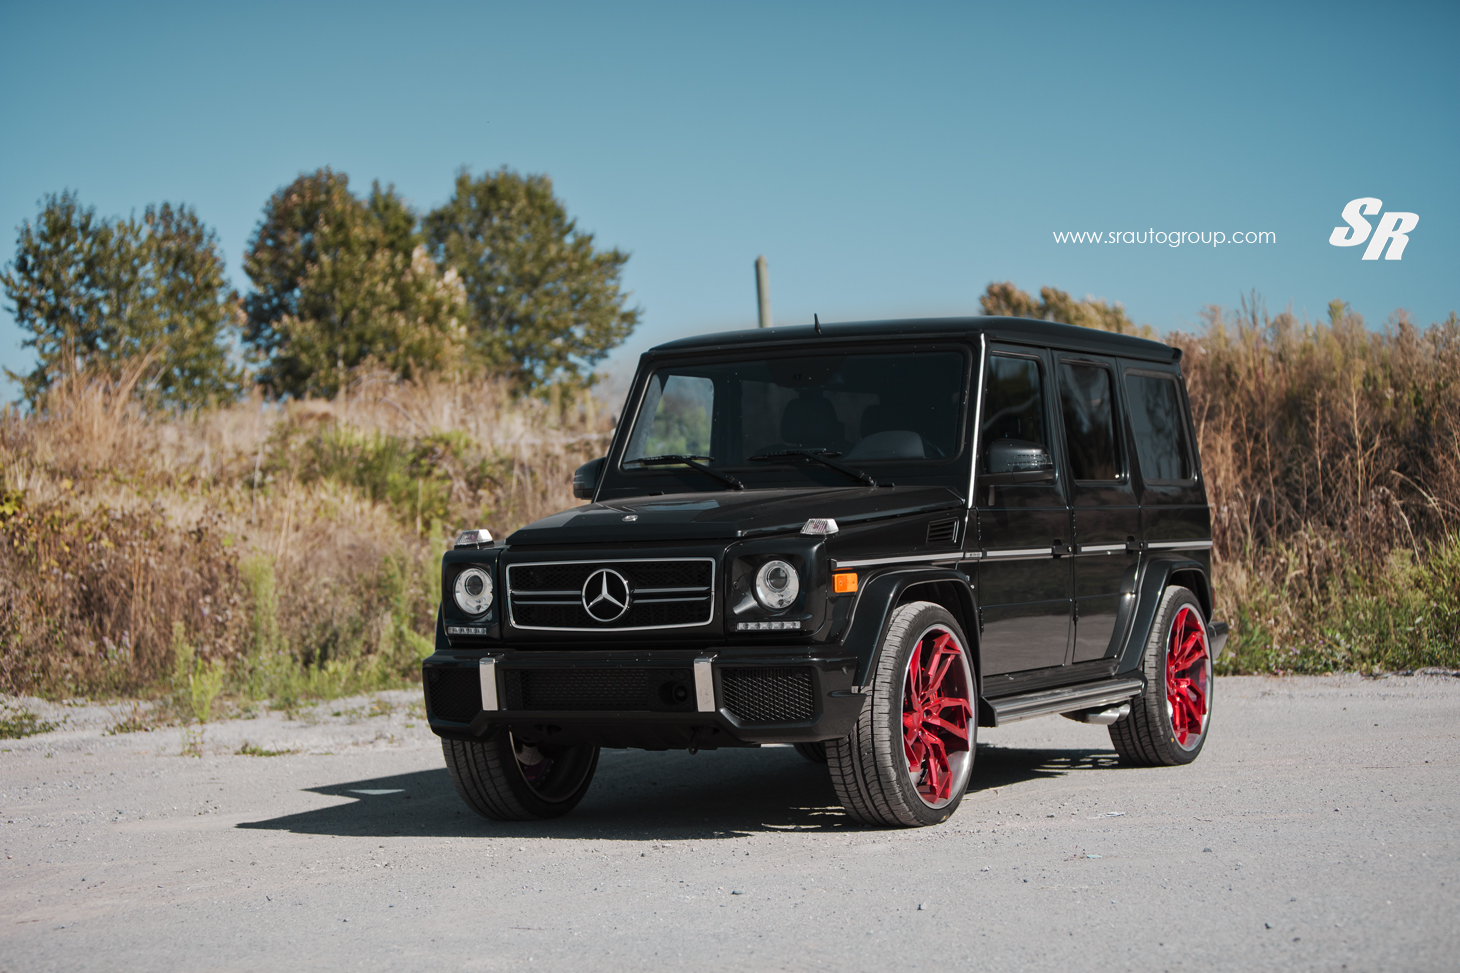 Project Cars Wallpaper Red Mercedes G63 Amg Gets Sharp Looking Pur Candy Apple Wheels